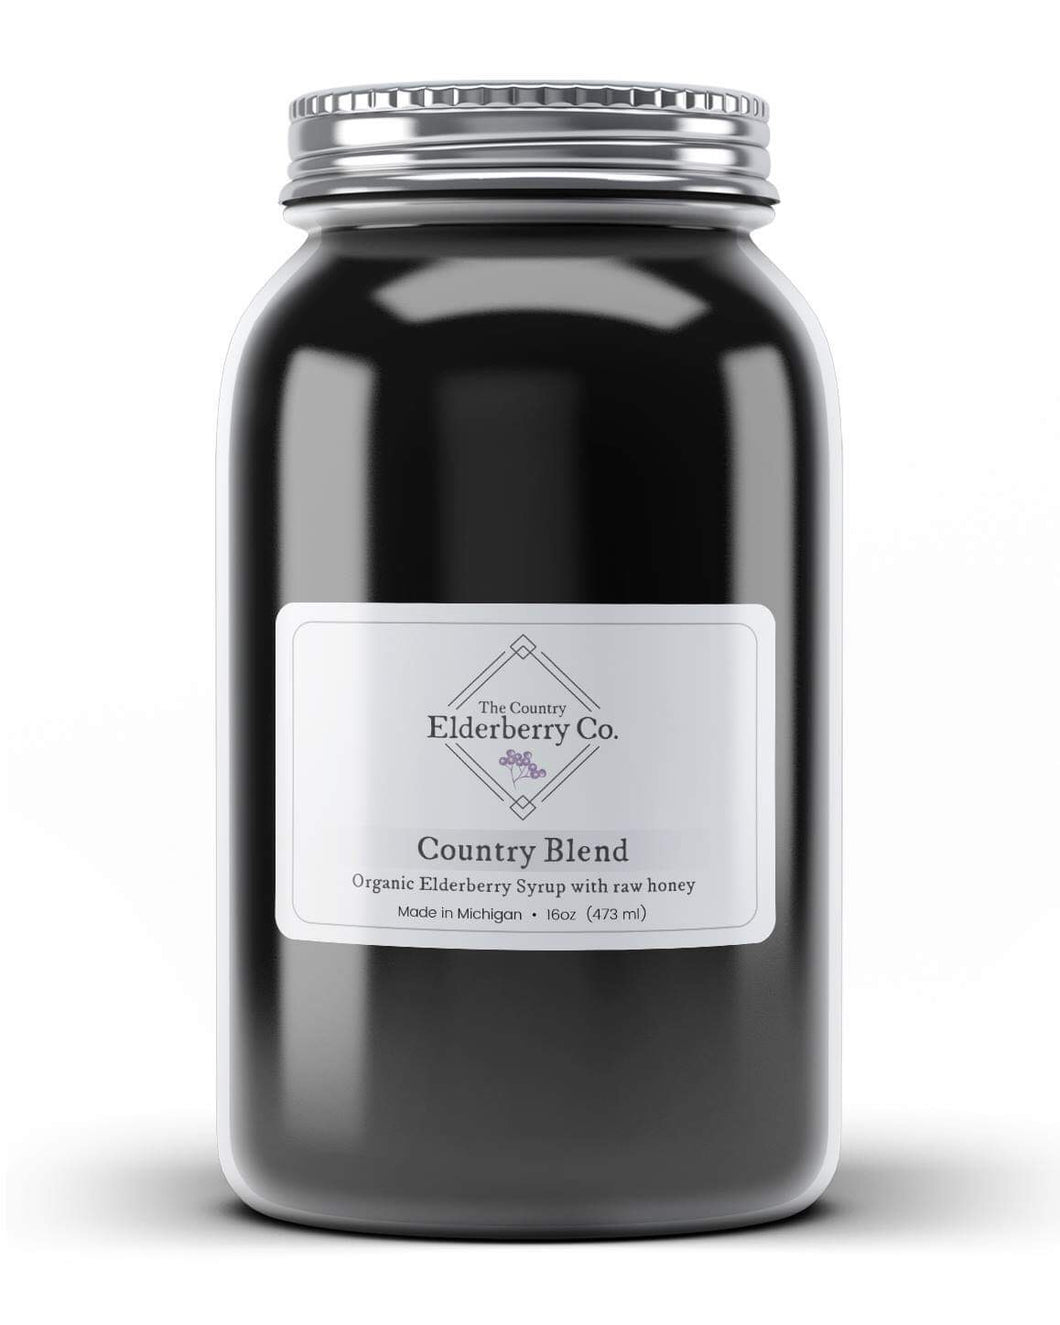 Elderberry syrup made with organic ingredients. Raw honey. preservative and filler free. Used to treat cold, flu and seasonal allergies. Made with Raw honey.